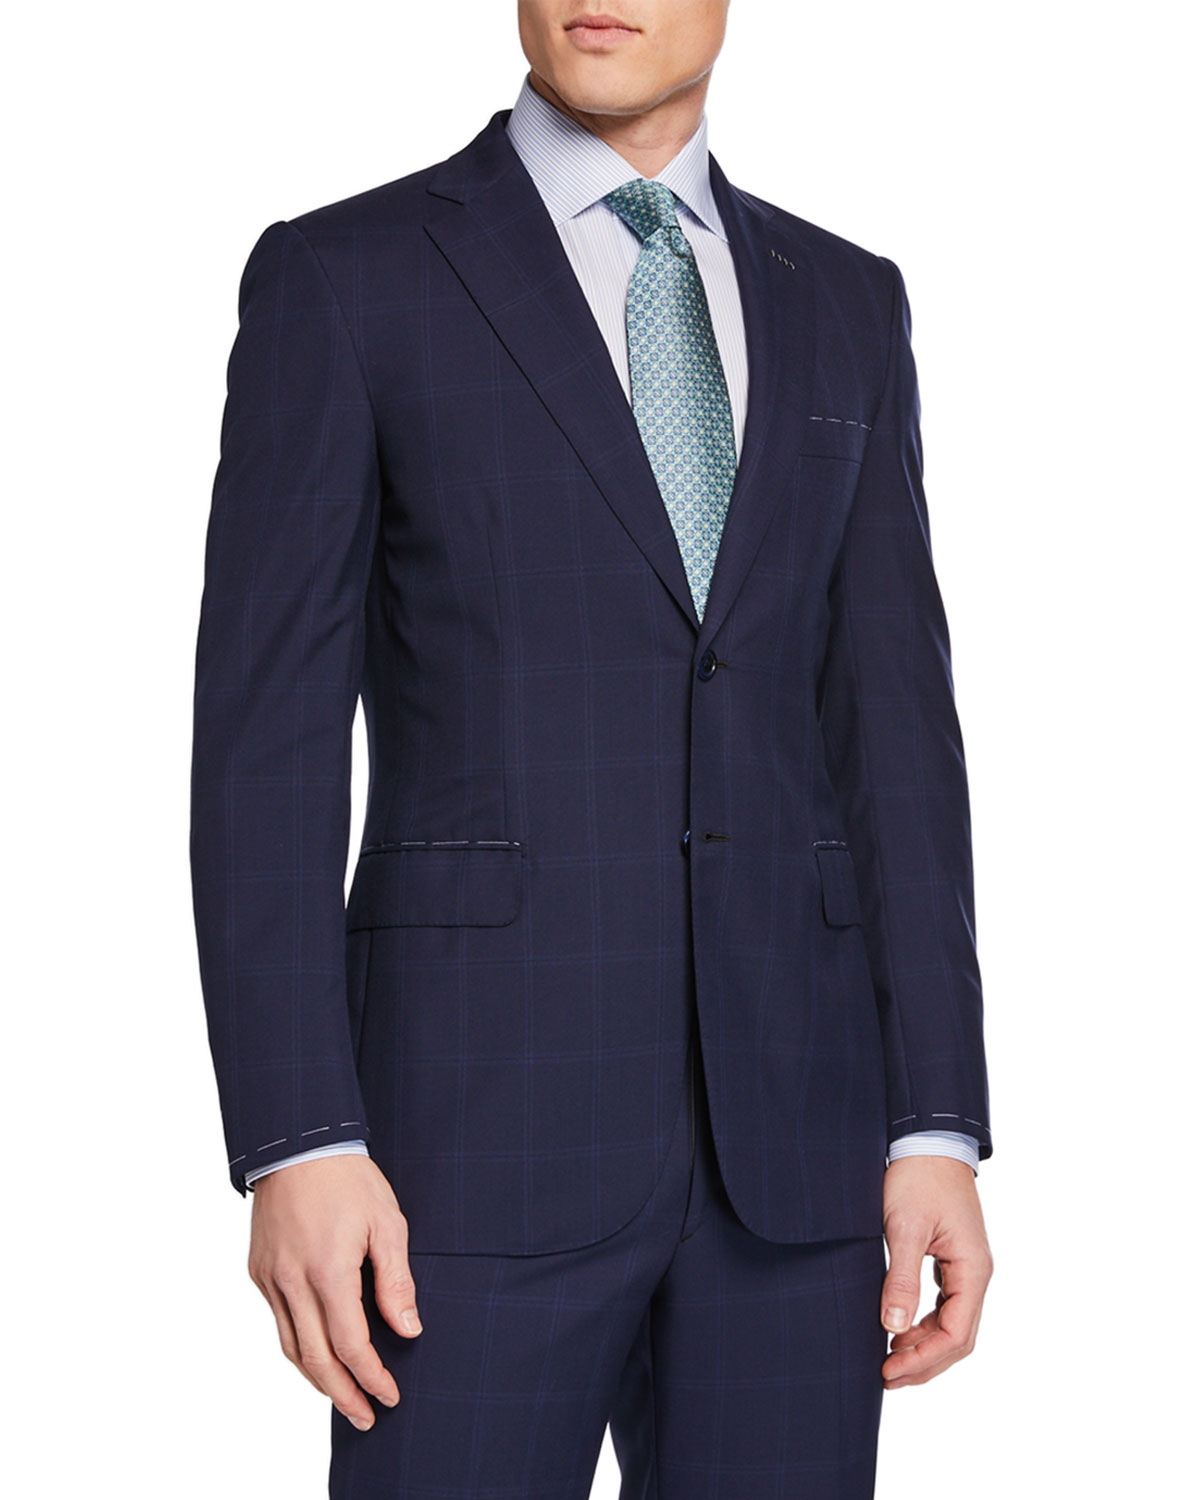 Brioni Men's Tonal Windowpane Two-Piece Suit